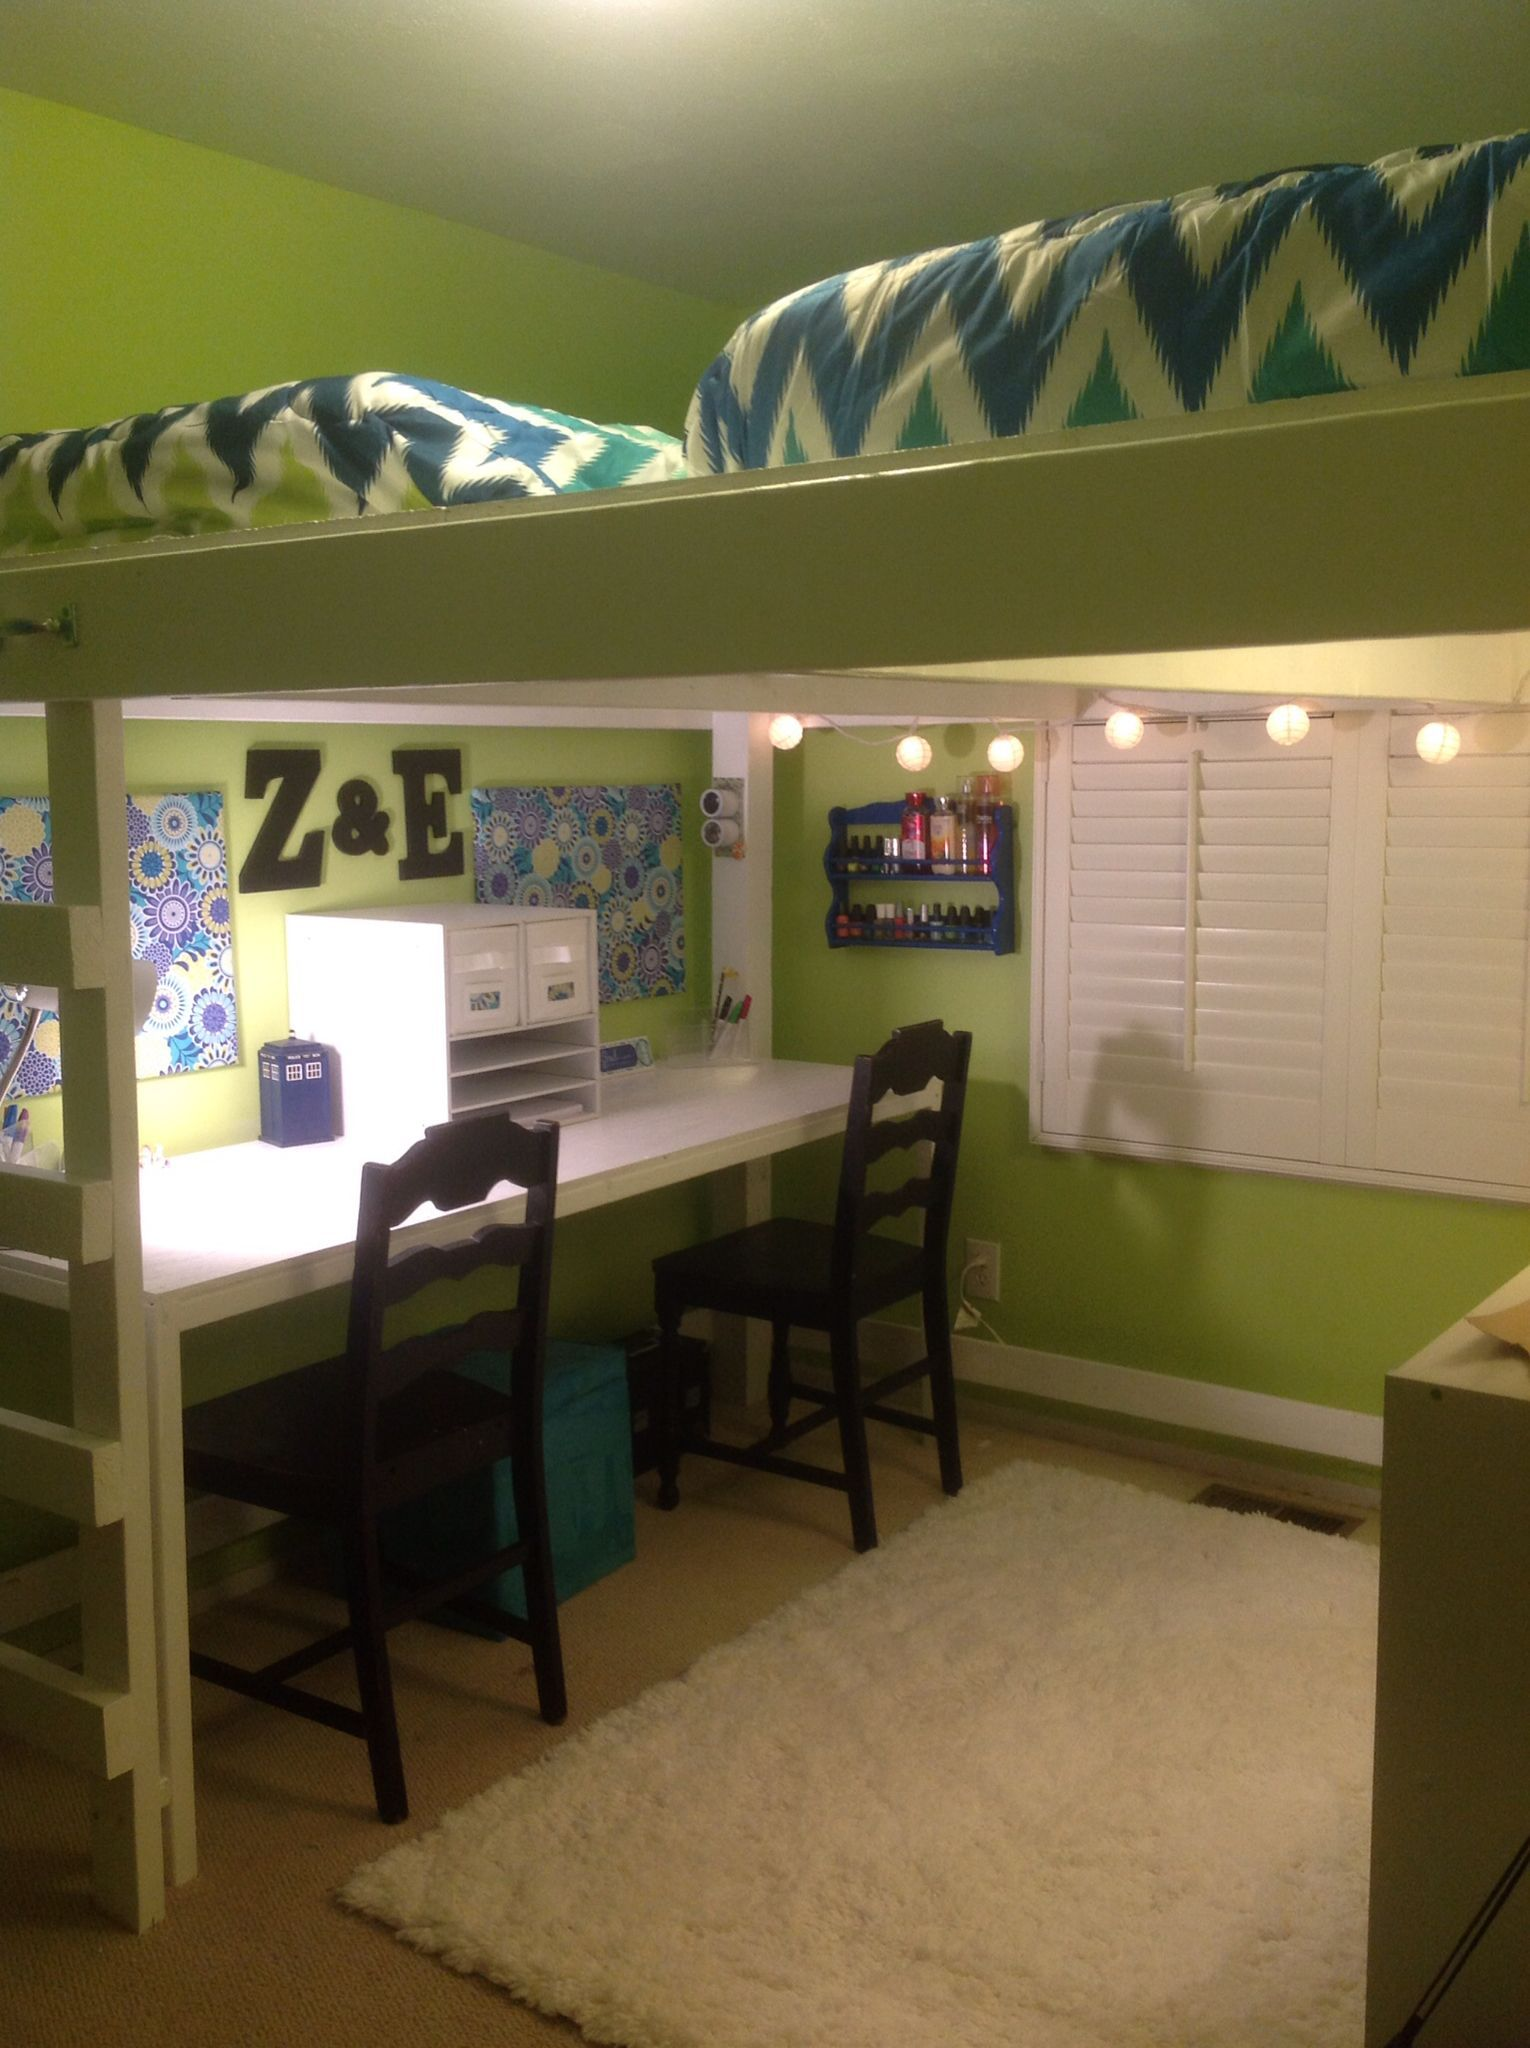 Finished Product Double Loft Platform With Built In Desk And Vanity Bunk Bed Room Ideas Bunk Bed With Desk Bunk Beds For Boys Room Bunk beds with built in desks